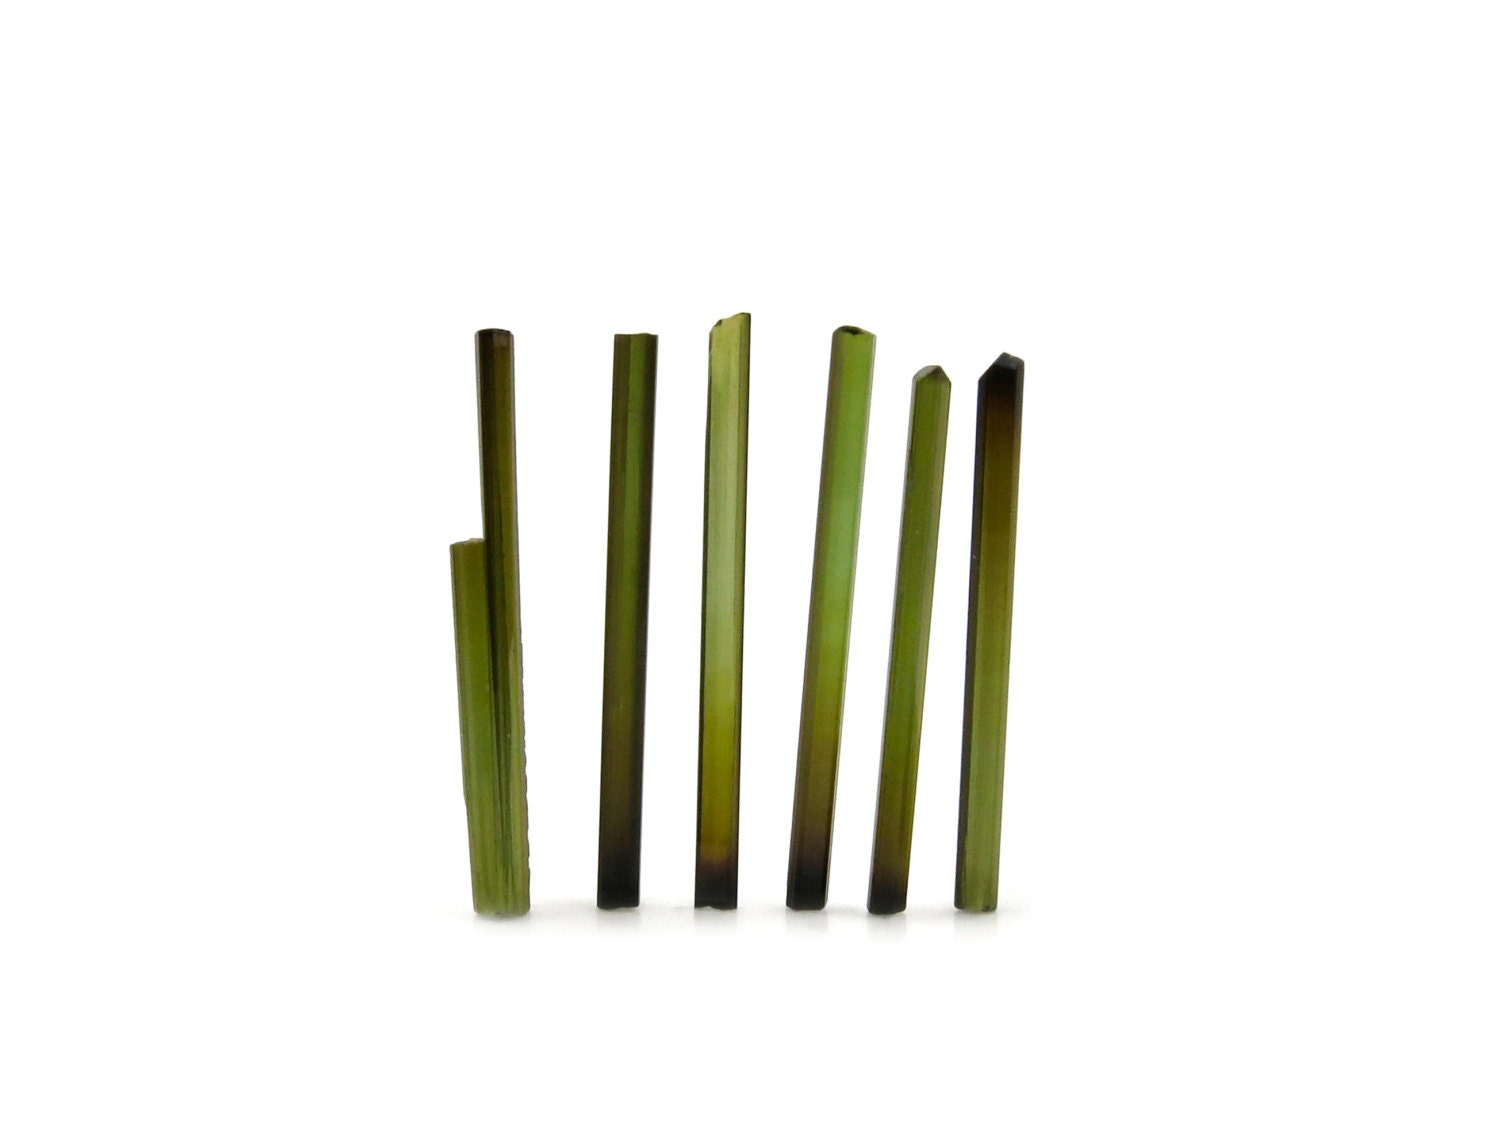 Green Tourmaline Needles from Brazil